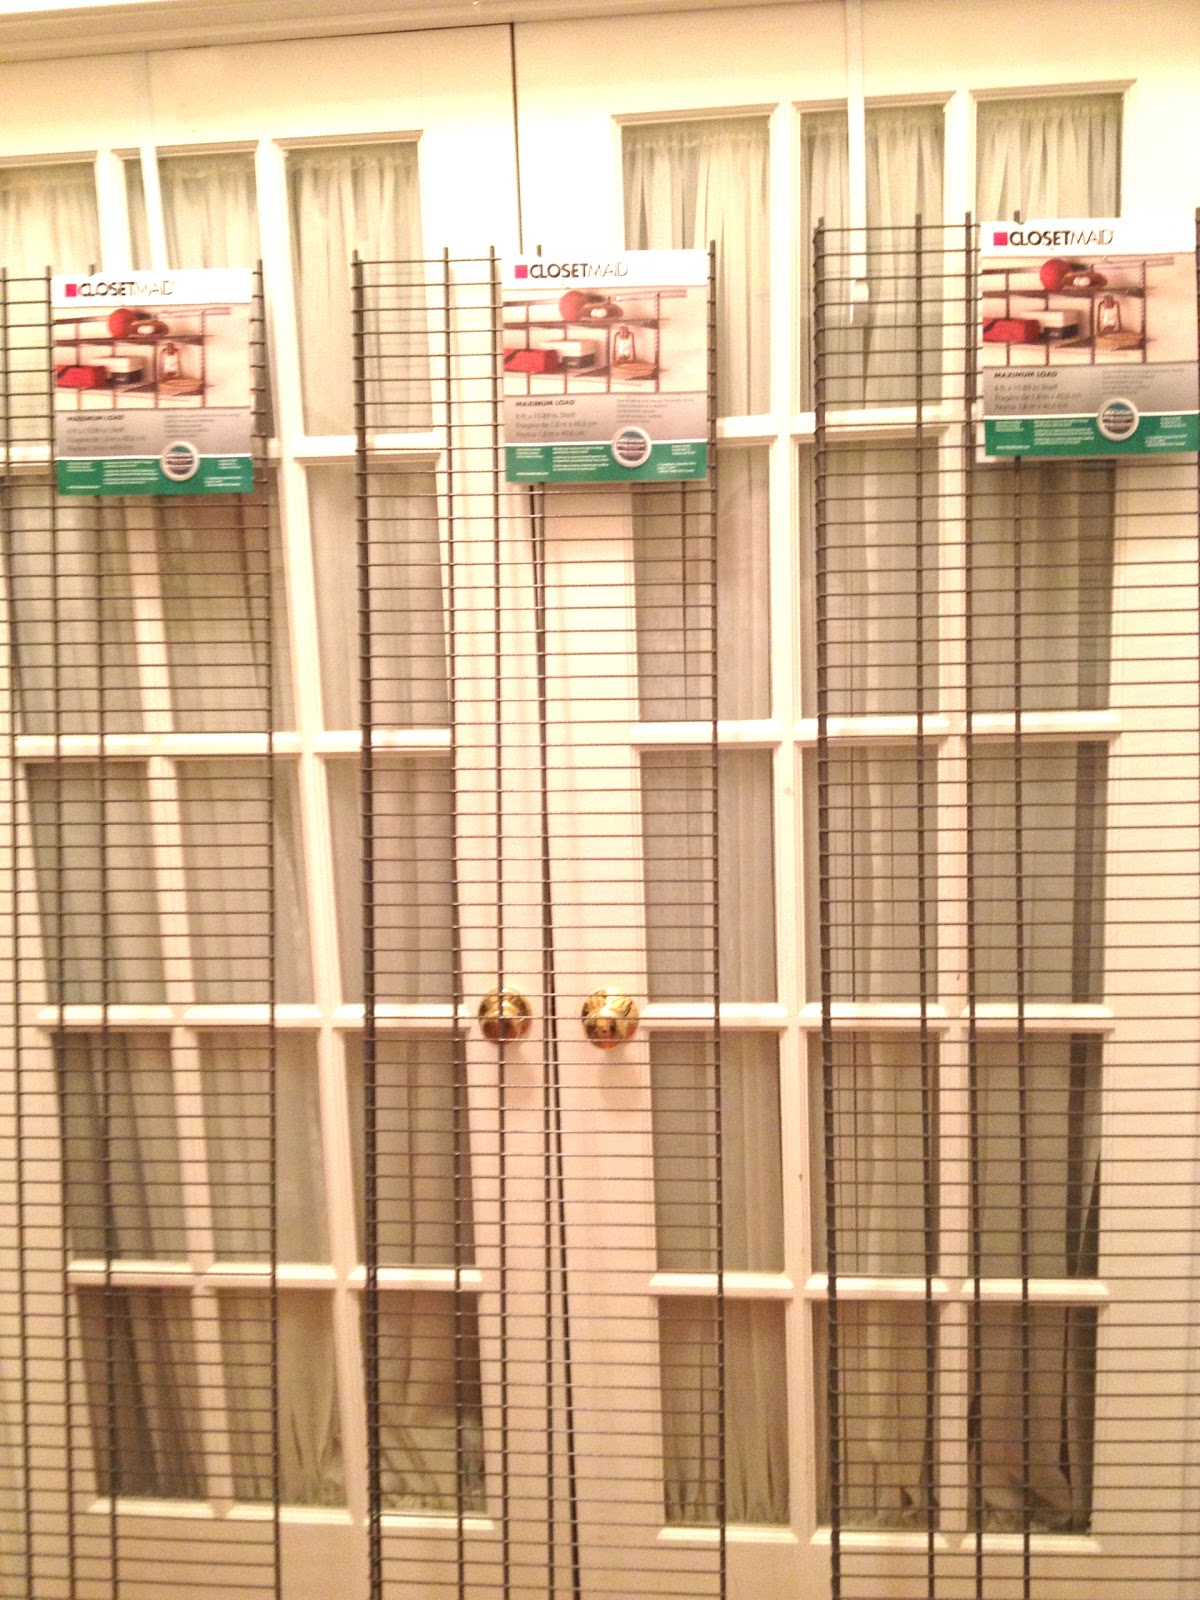 How to make a wreath craft show display or storage tower for How to make display shelves for craft show